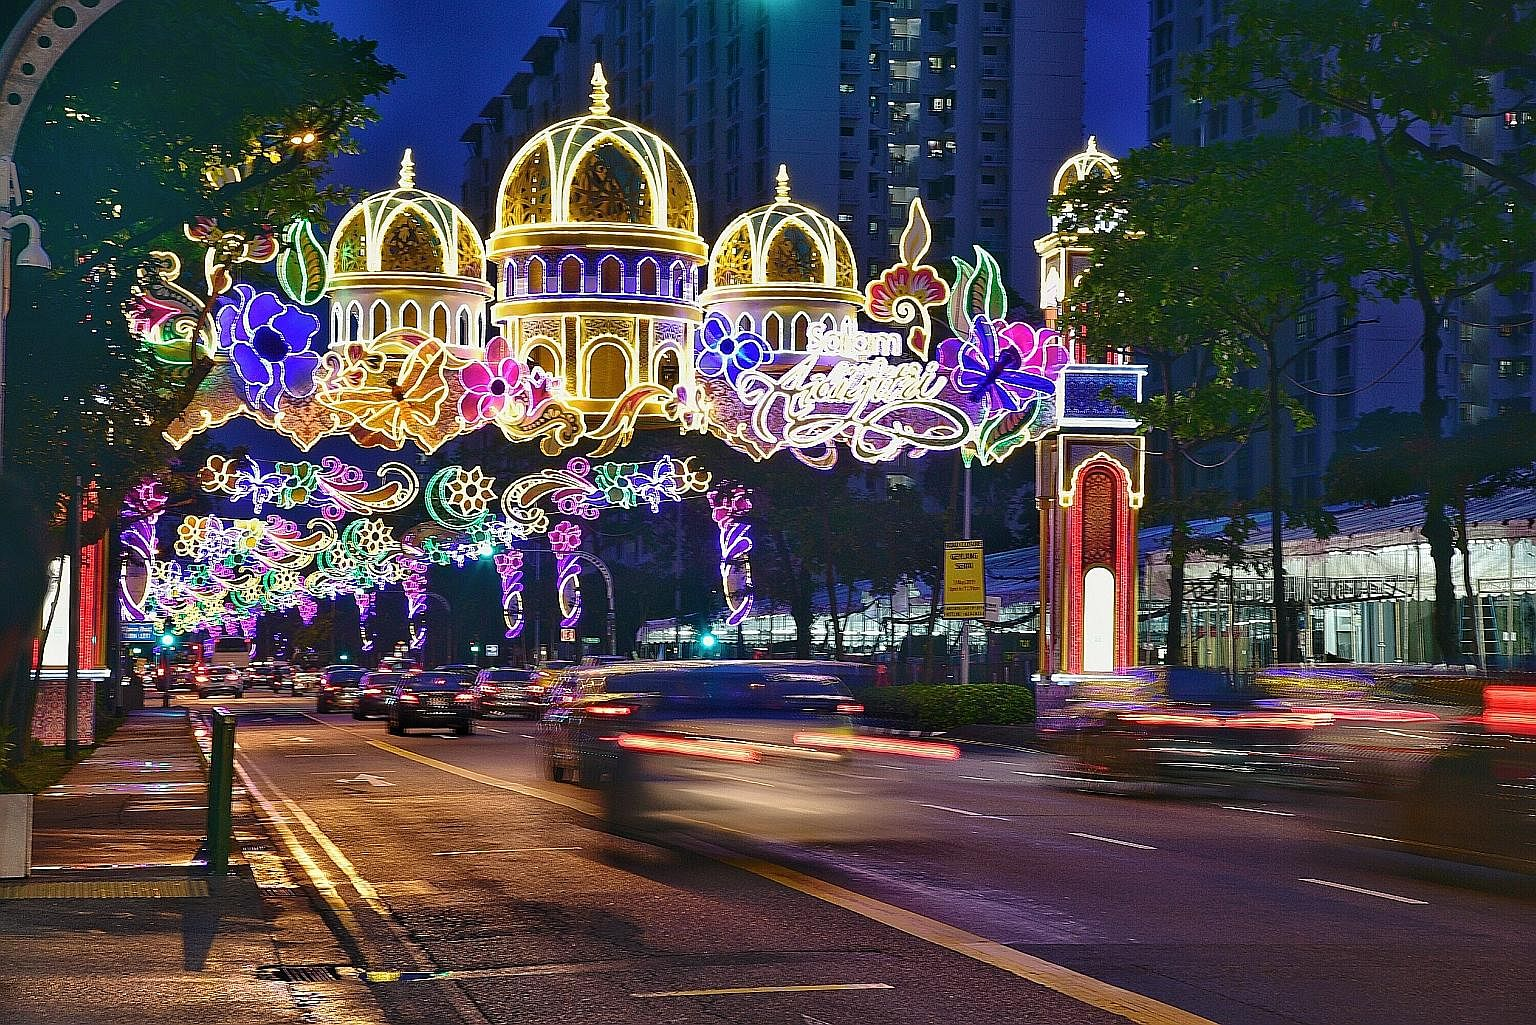 A 15.4m-high and 23m-wide arch along Sims Avenue features a mosque with golden domes surrounded by full blooms that symbolise a new beginning and renewed bonds of friendship and kinship. The decoration is part of the annual Hari Raya light-up, which